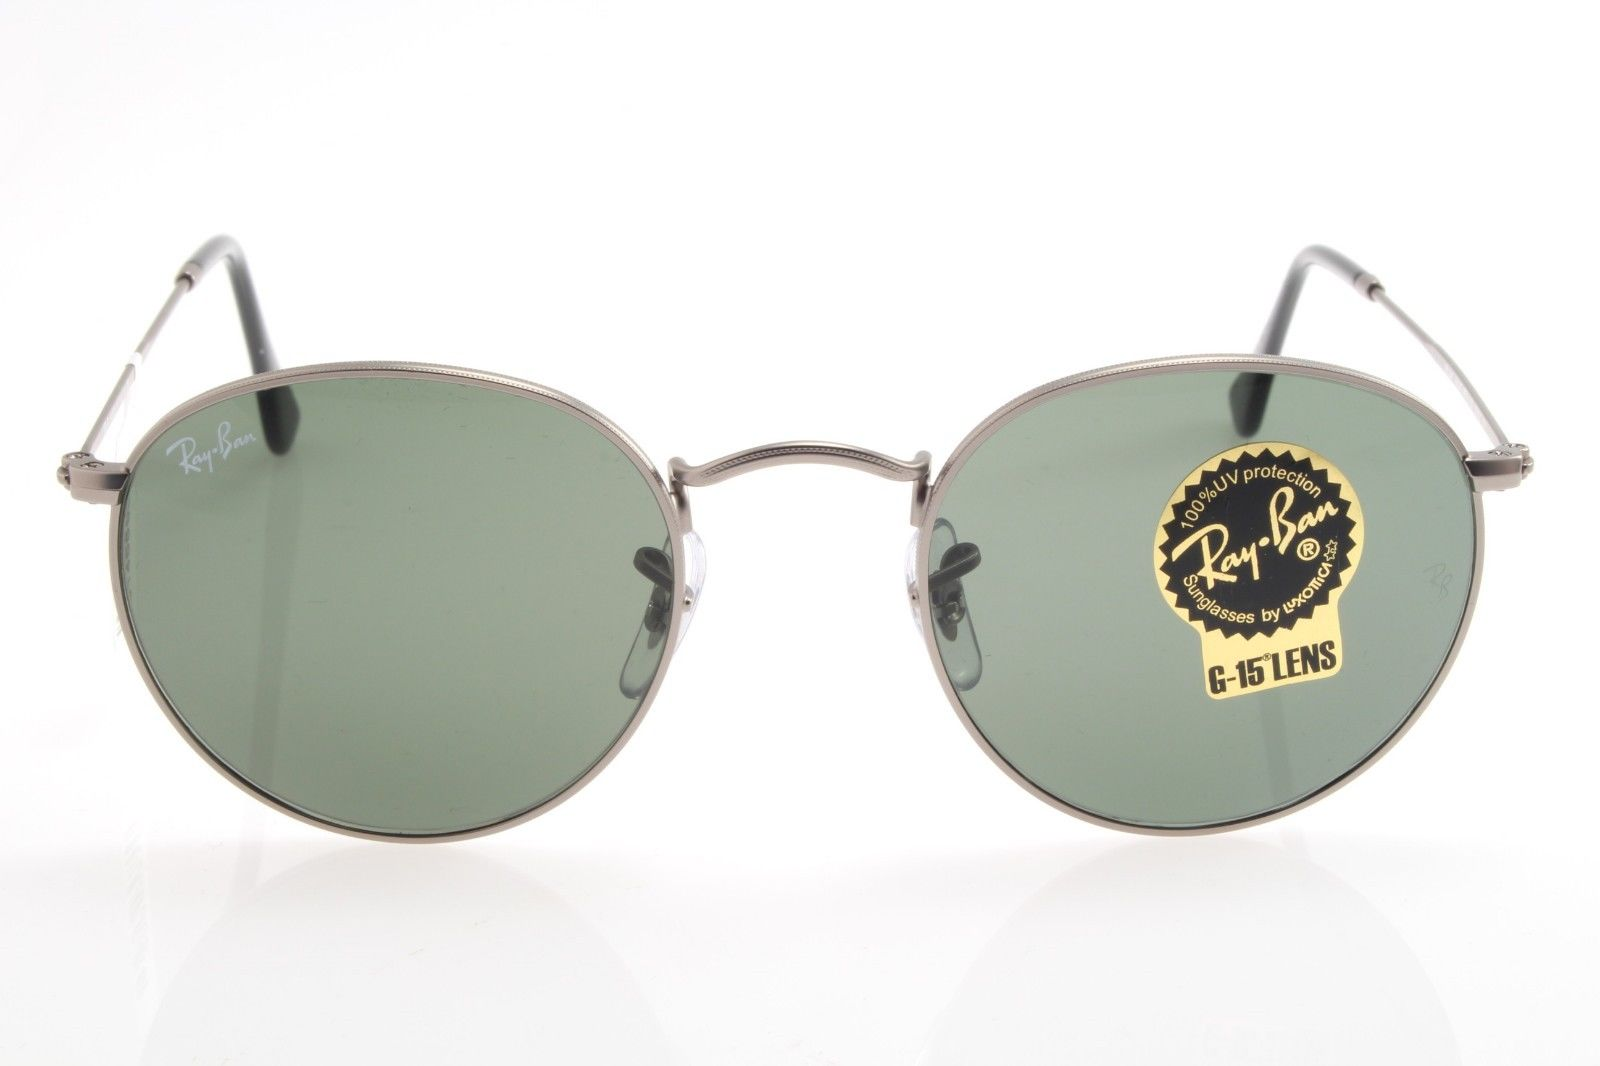 c9230a948d New original sunglasses Ray Ban RB 3447 029 47 Round Metal Matte Gunmetal  Green